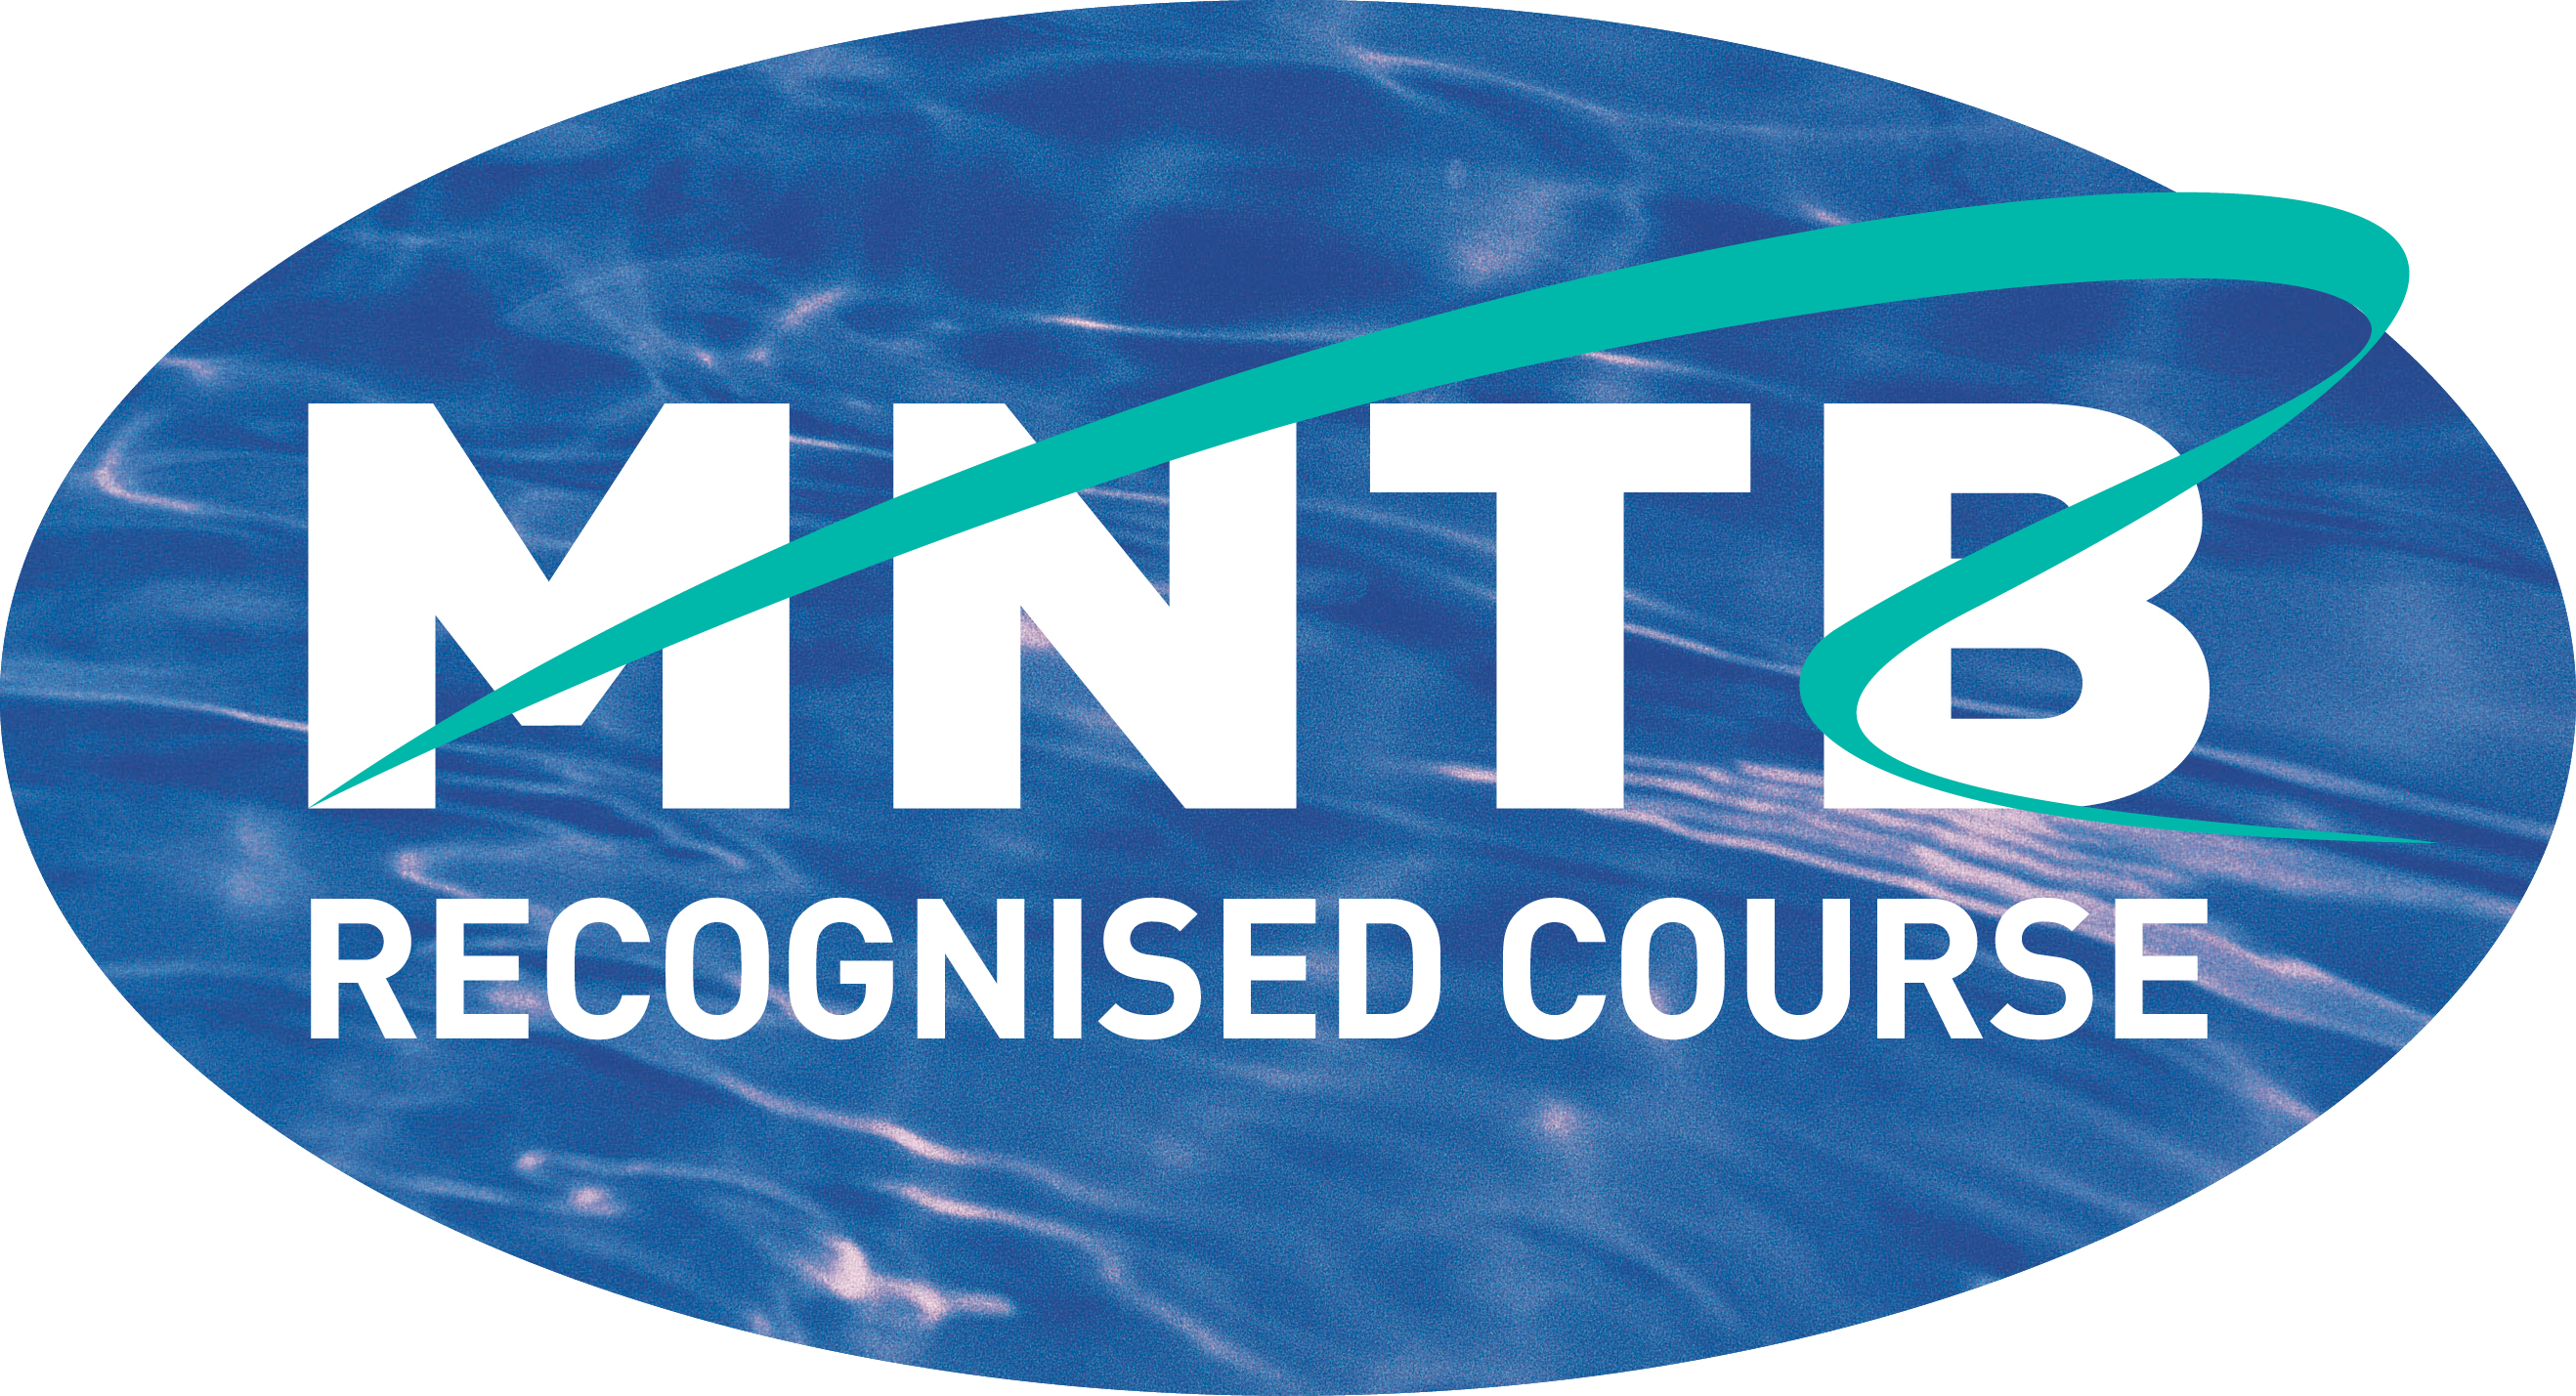 Superyacht Command and Control Simulation Course - KG Maritime